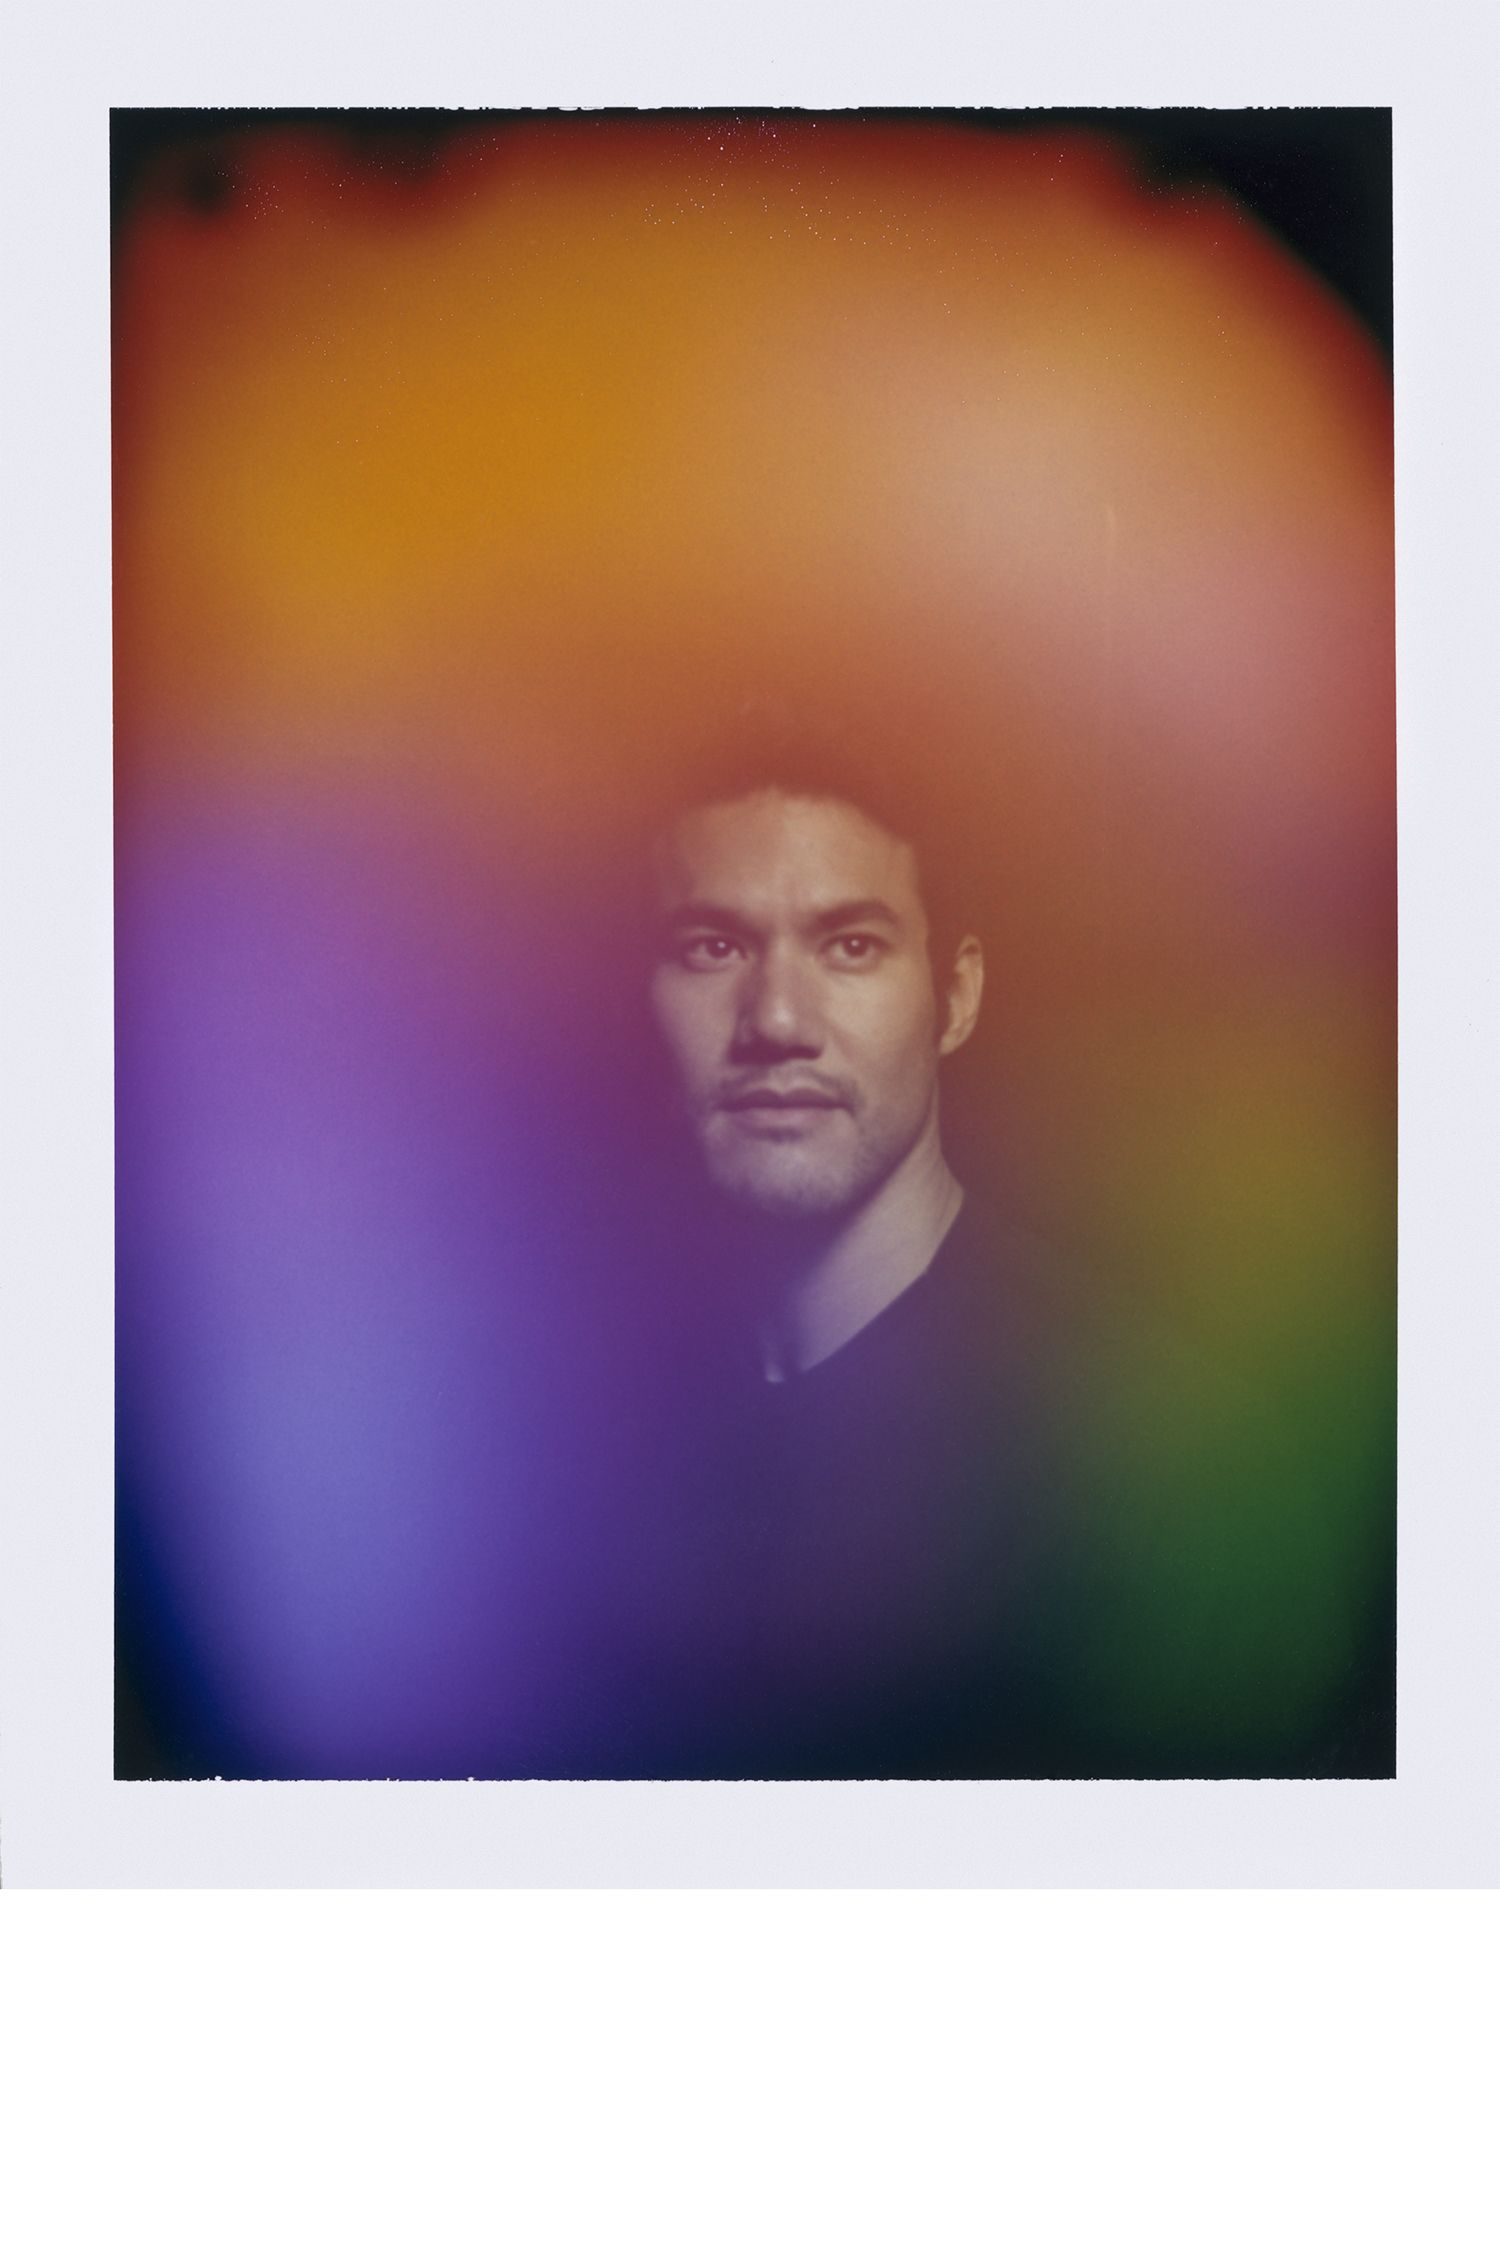 """<p><em><strong></strong></em><em><strong>""""I love how nuanced it is. It looks like a watercolor.""""</strong></em></p><p>Joseph has a ton of yellow in his aura, which shows that he's very optimistic. It's also the color of whimsicality and ease. People with yellow in their consciousness are fun to be around because they provide an atmosphere for people to be themselves. Joseph has a good amount of tan too, which is all about wanting a sense of security and dependability, and orange, which shows a willingness to take risks. And then there's this patch of green, which is very common for people who live in New York City. It shows tenacity and drive, which you need in a place like this, where you either sink or swim. The really interesting thing is the juxtaposition of blue and green. Blue, on the left side, is very sensitive and loyal and emotional, whereas green is more logical. So it looks like Joseph may have some struggle there, because logic doesn't always follow emotion, and vice versa. Also, this mix of red and purple is a pattern that I like to call 'the creative hustler'—purple is all about vision, and red is all about action. And for a designer, that's a great thing to have in your aura.<em><strong><br></strong></em></p>"""